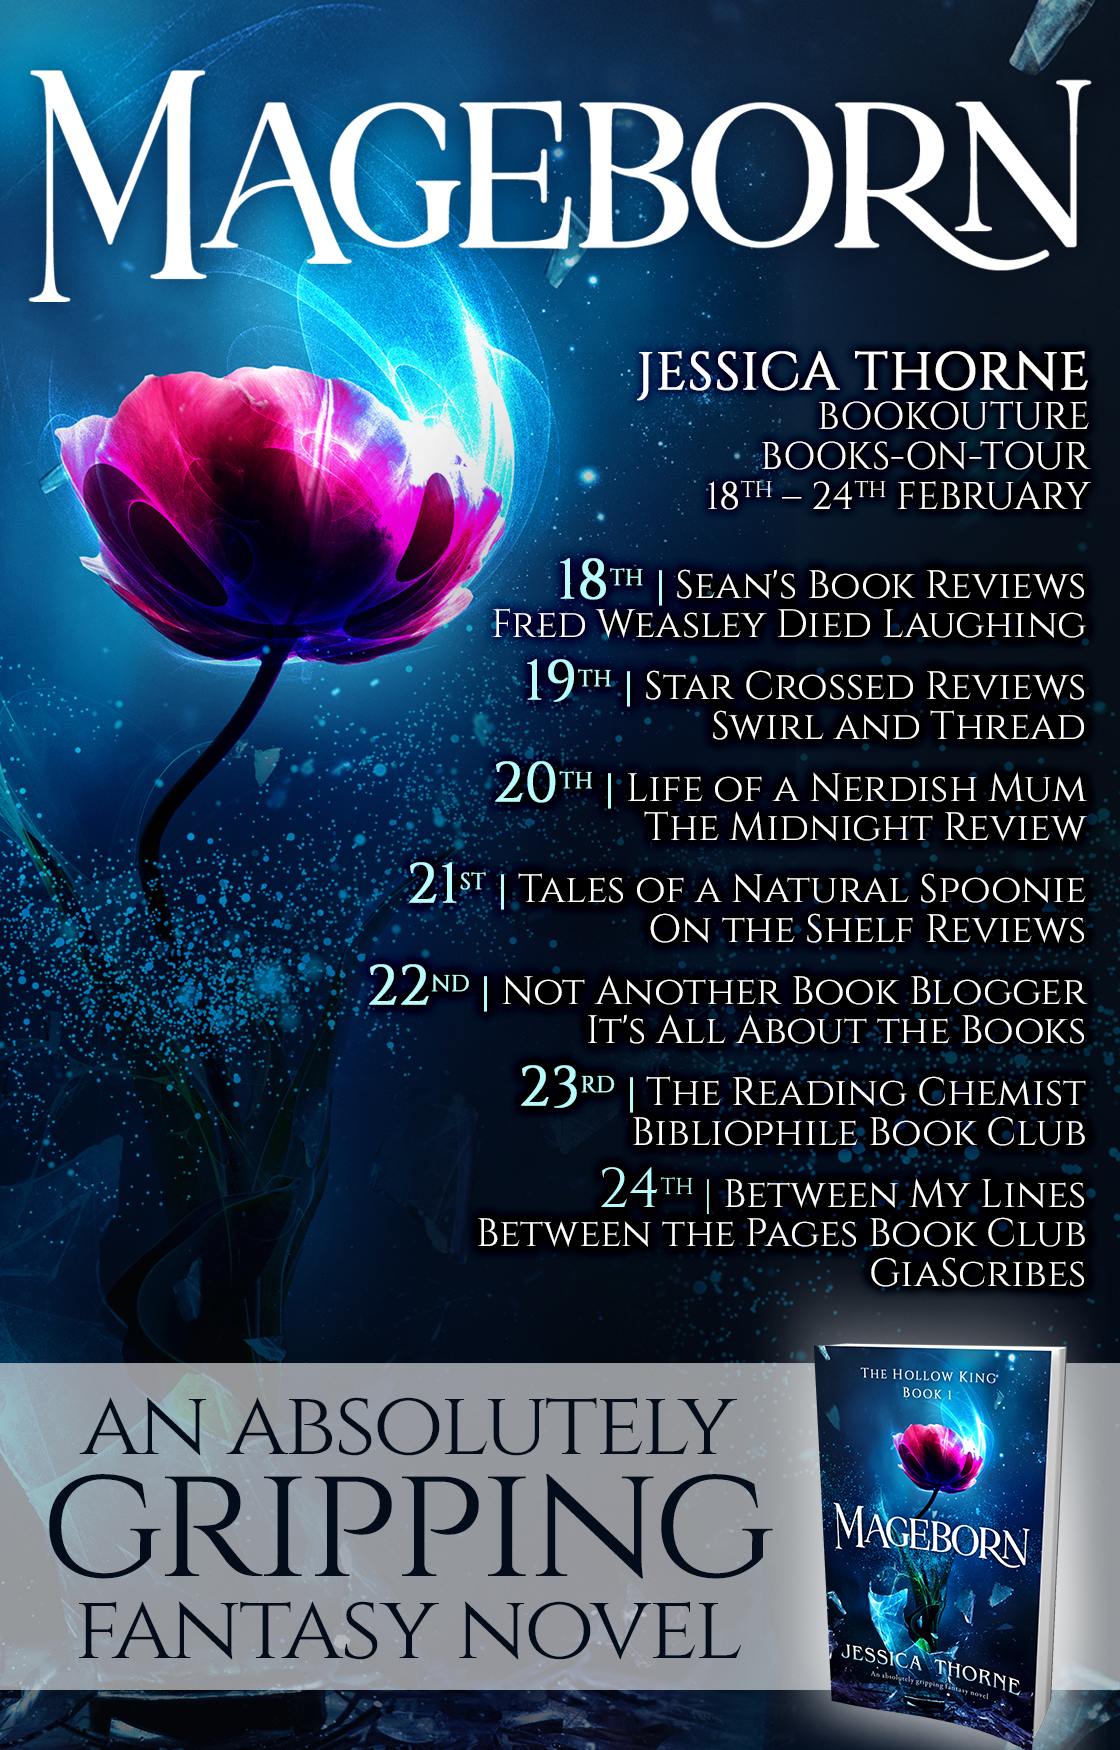 Blog Tour Review: Mageborn